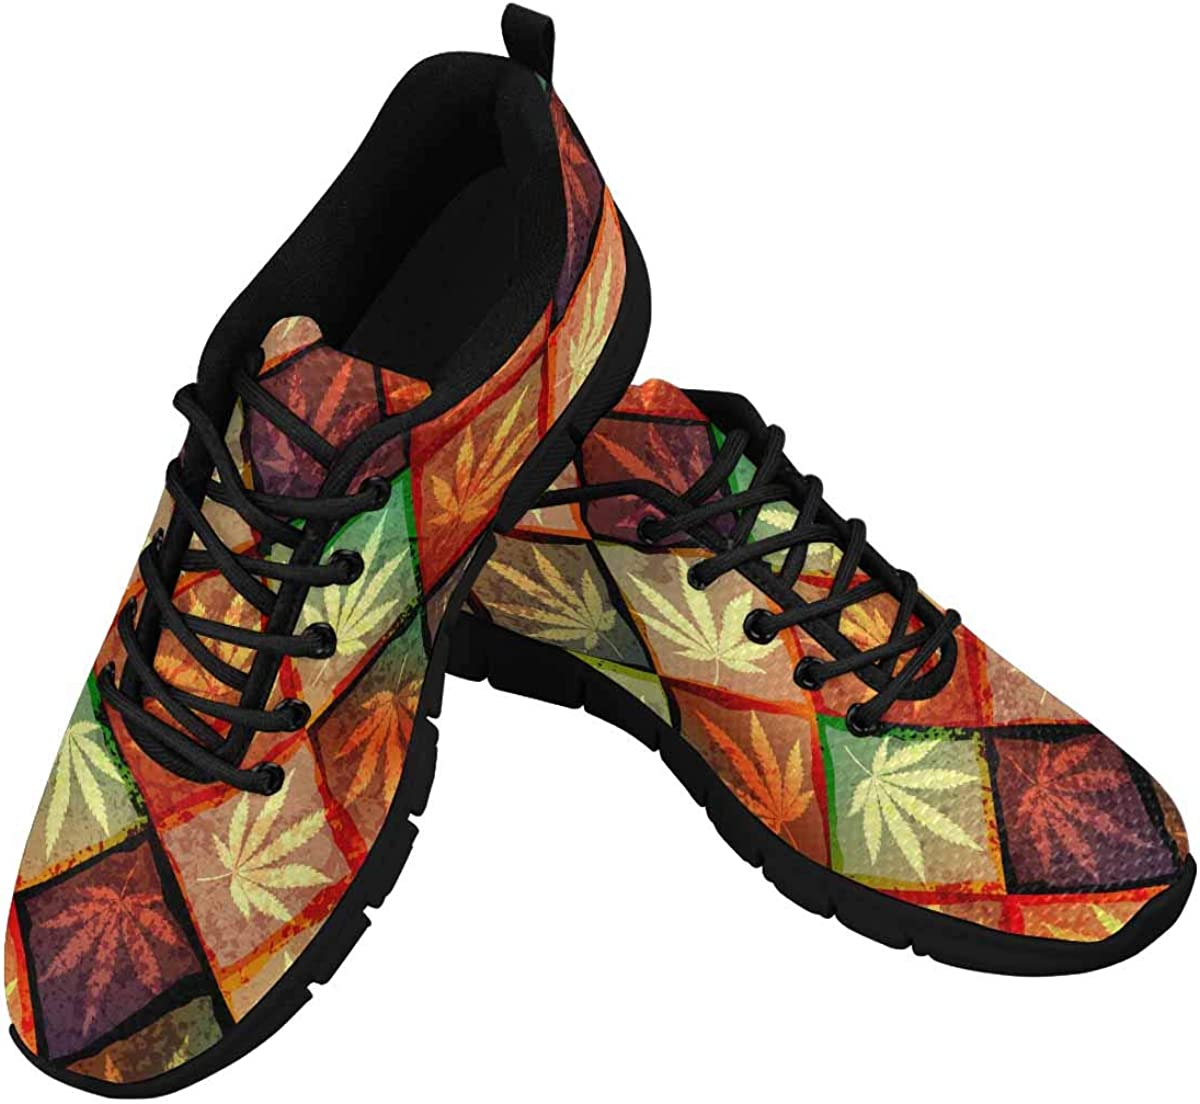 INTERESTPRINT Colorful Hemp Leaves Women's Athletic Mesh Breathable Casual Sneakers Fashion Tennis Shoes